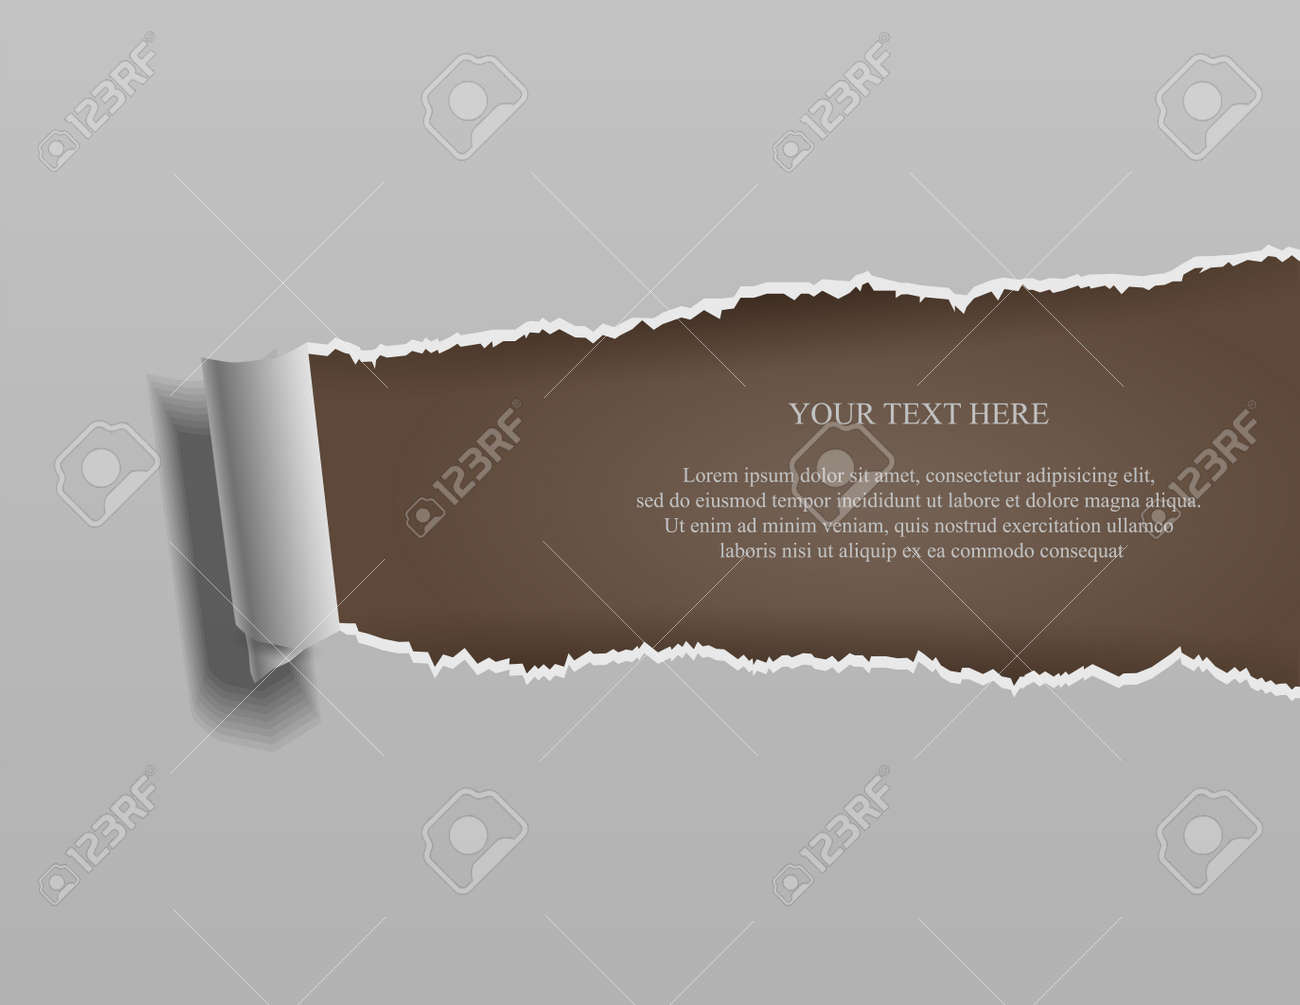 Realistic torn paper with rolled edges on brown background - 168266715